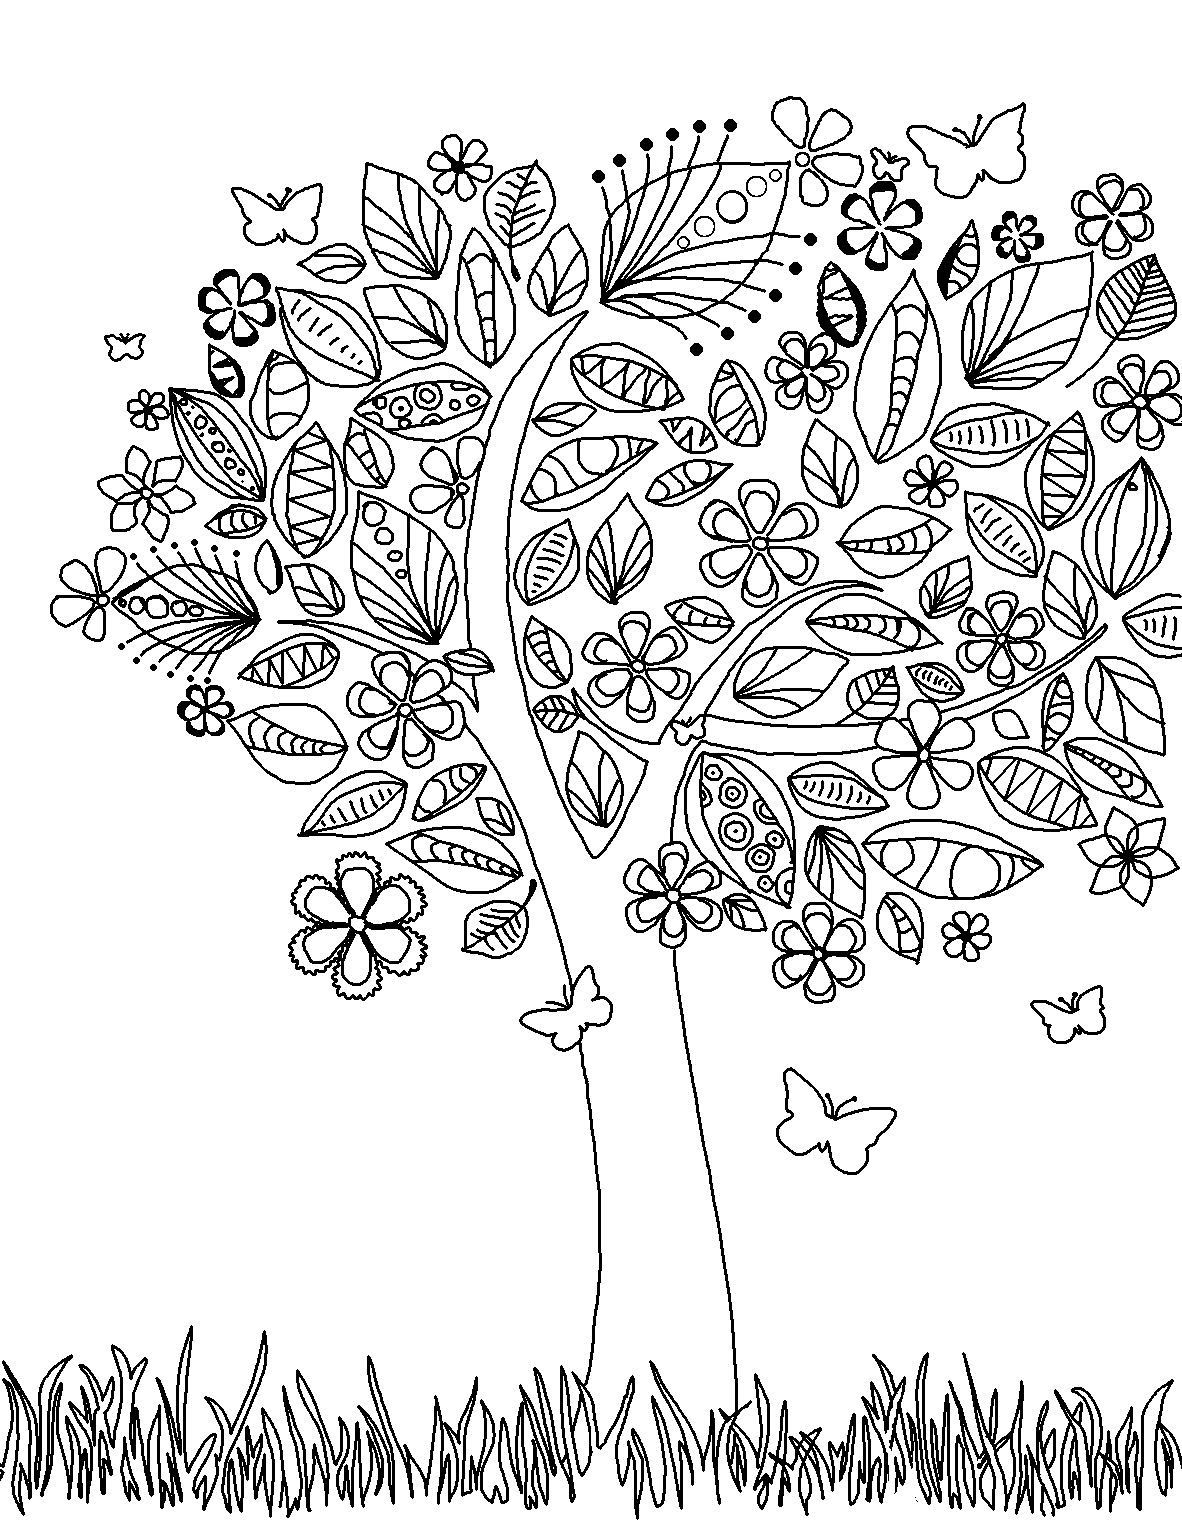 1000 images about craft ideas on pinterest ems korea for Coloring pages for adults difficult flower